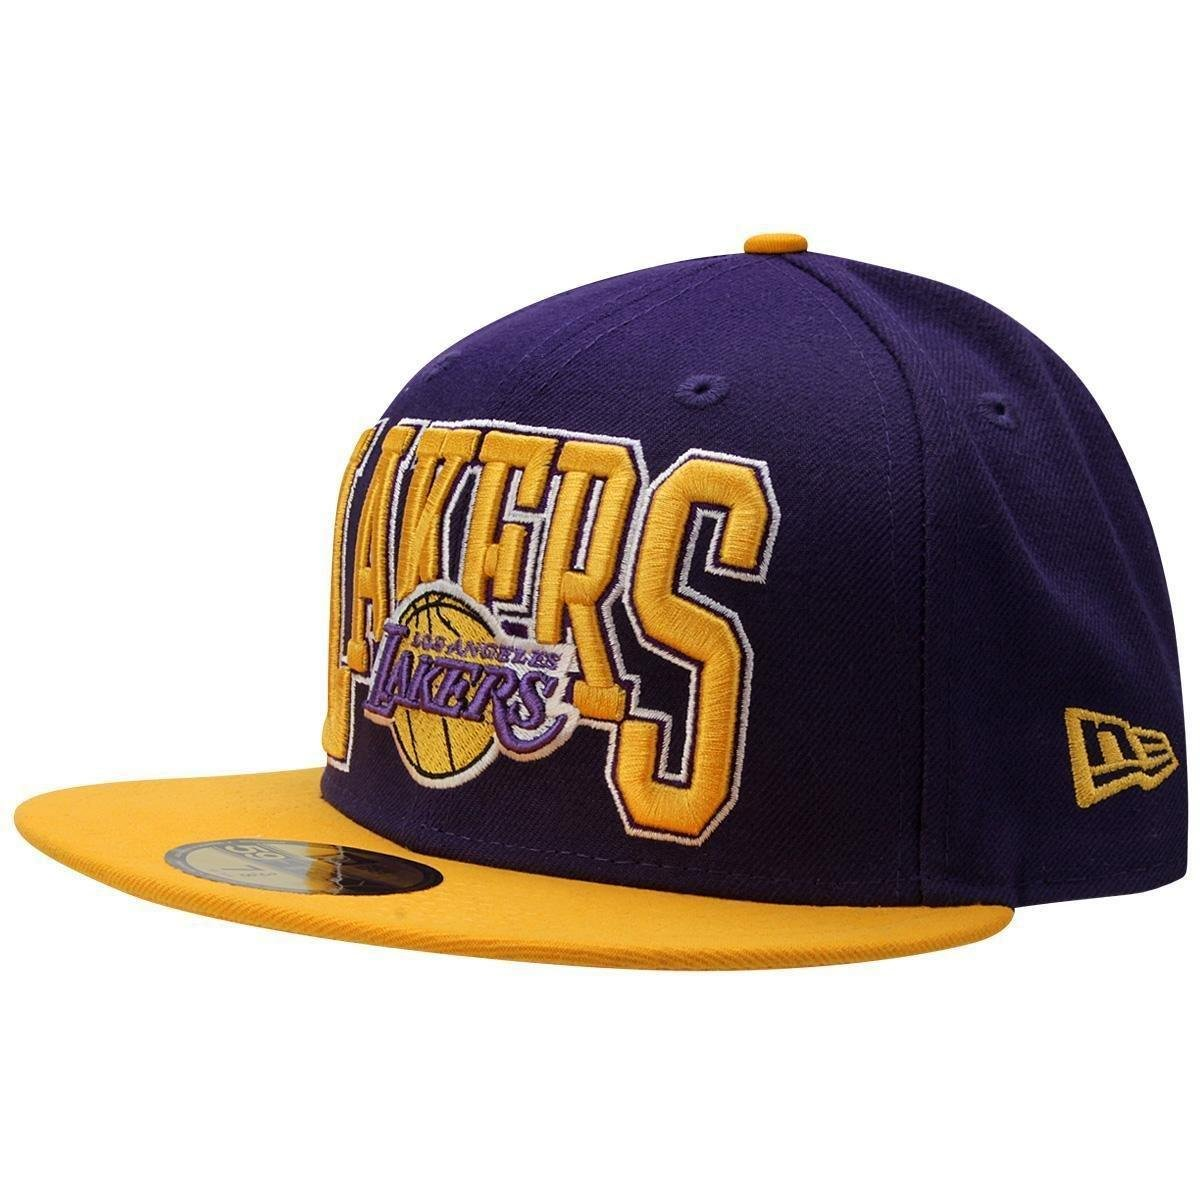 Boné New Era NBA 5950 2Tb Los Angeles Lakers - Compre Agora  0c835099ac6